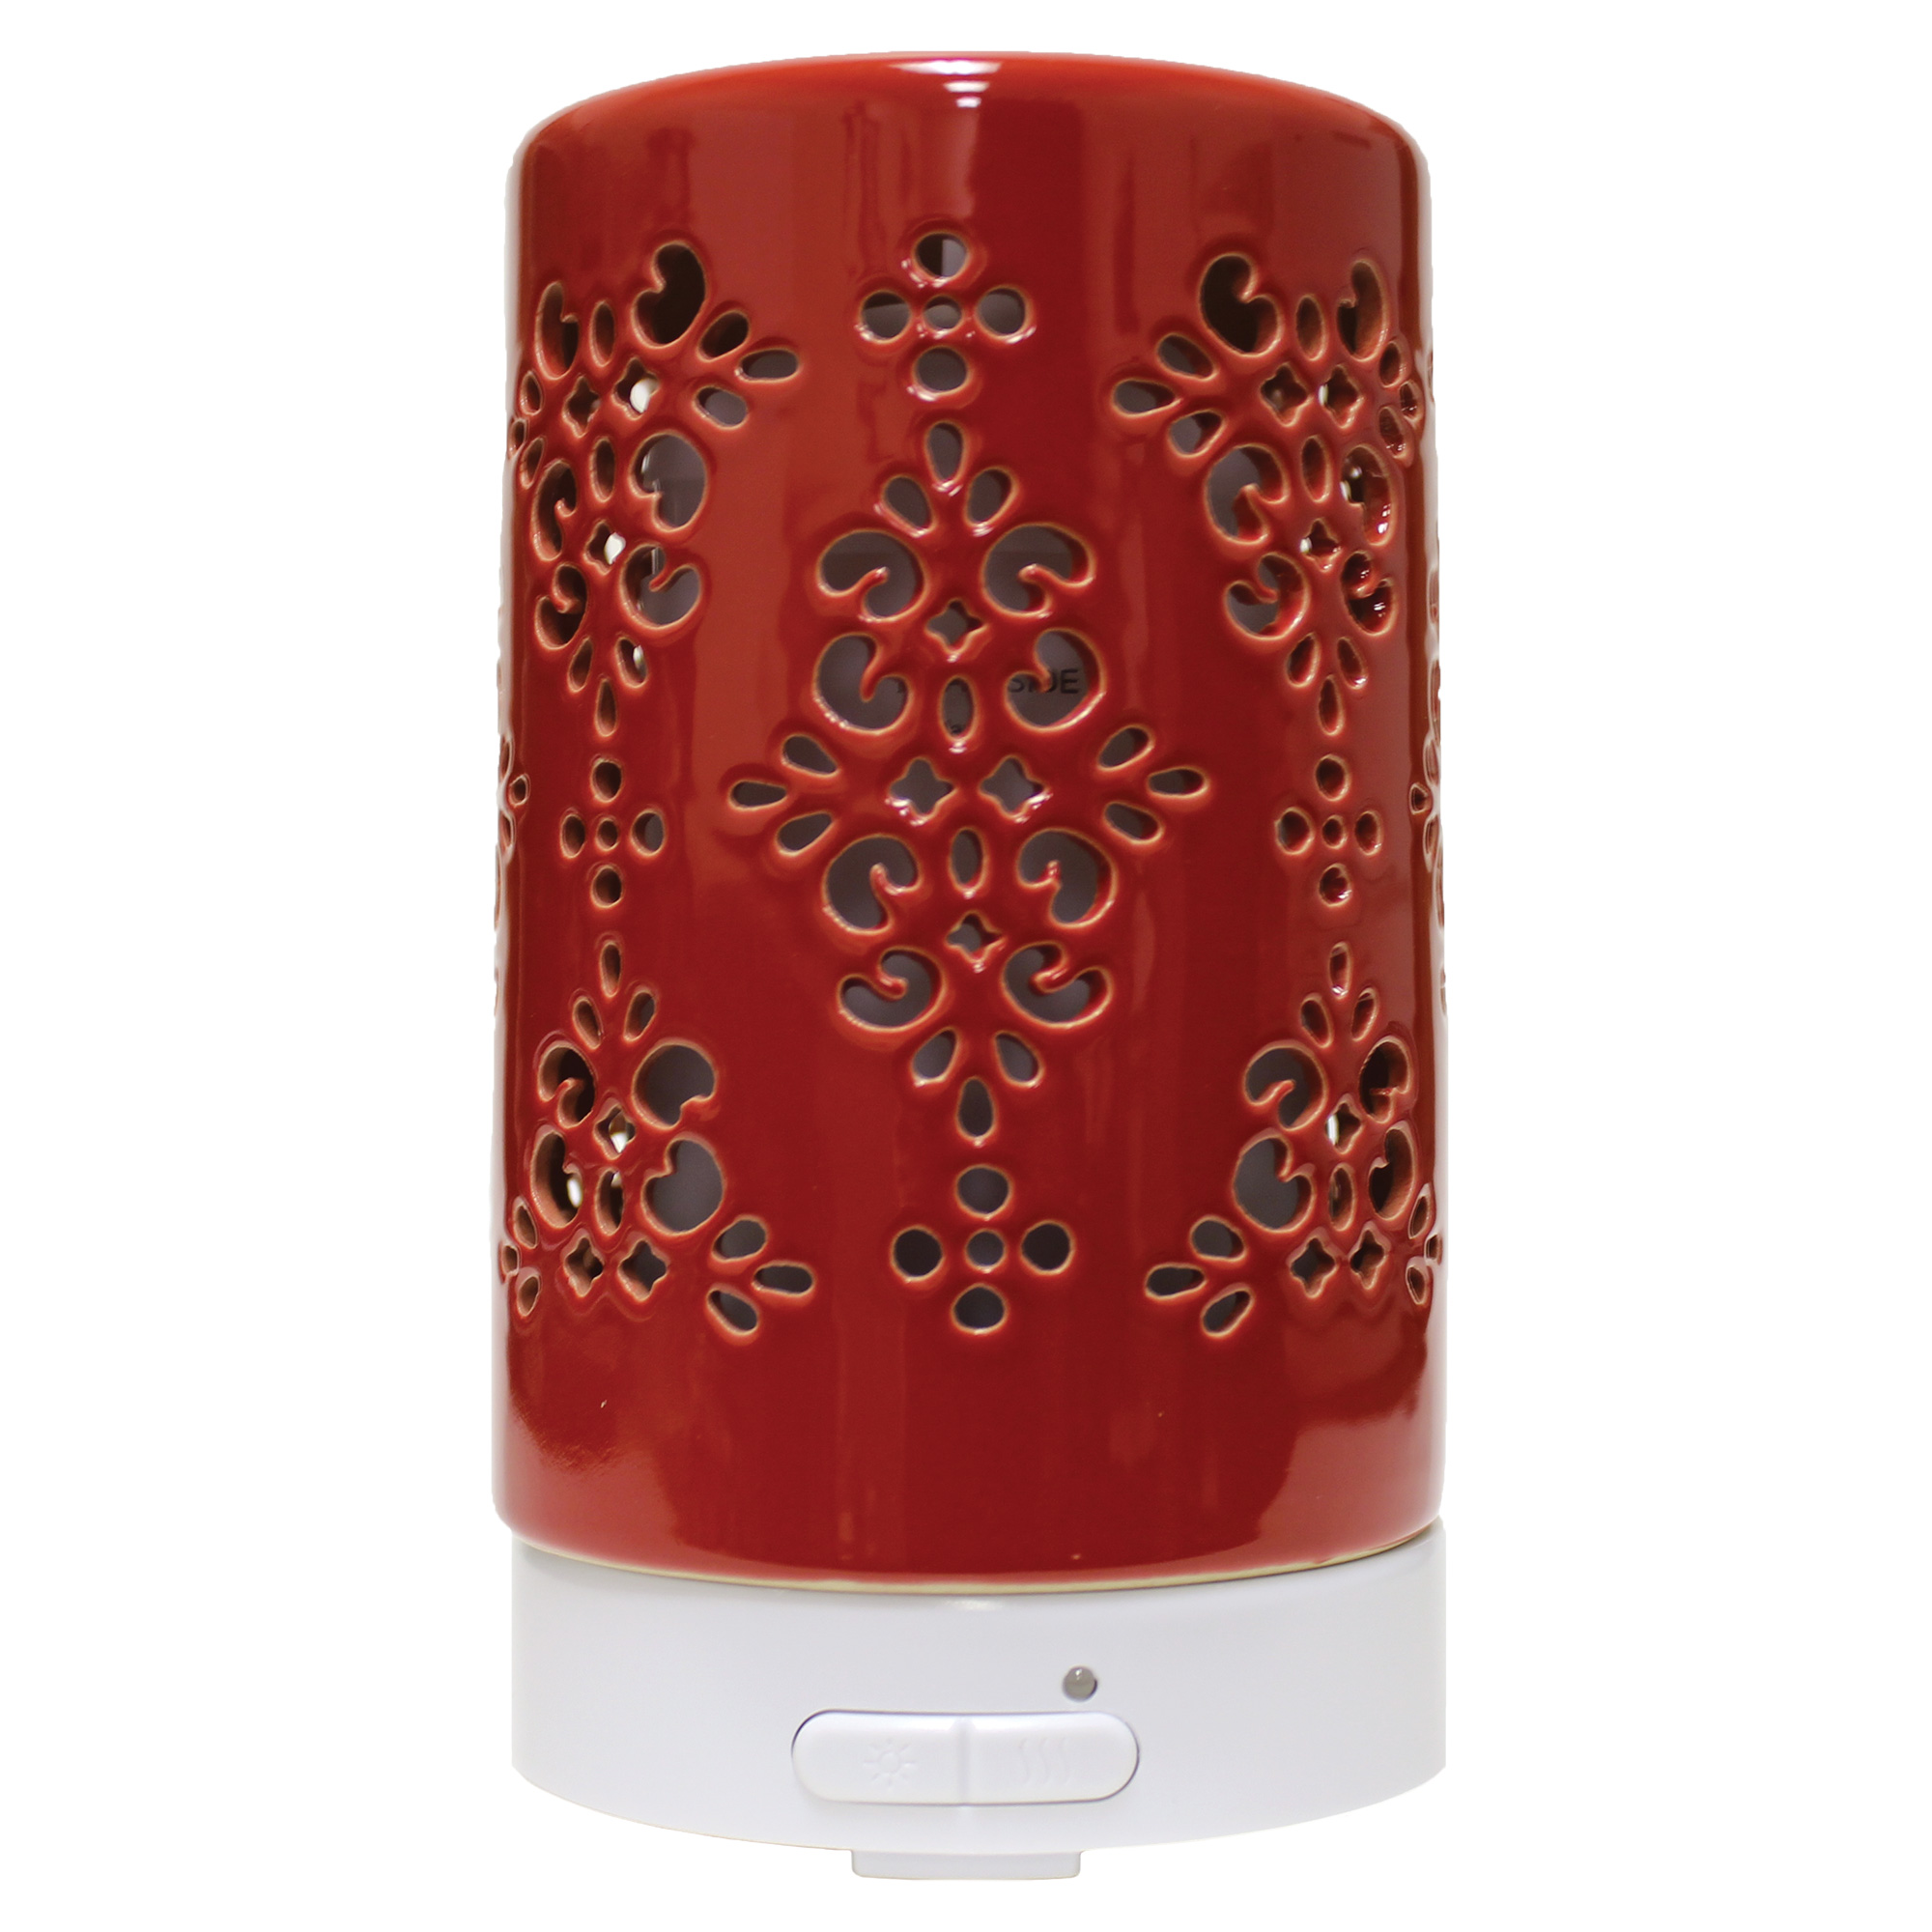 TAPESTRY RED ULTRASONIC OIL DIFFUSERUPC# 674623018096